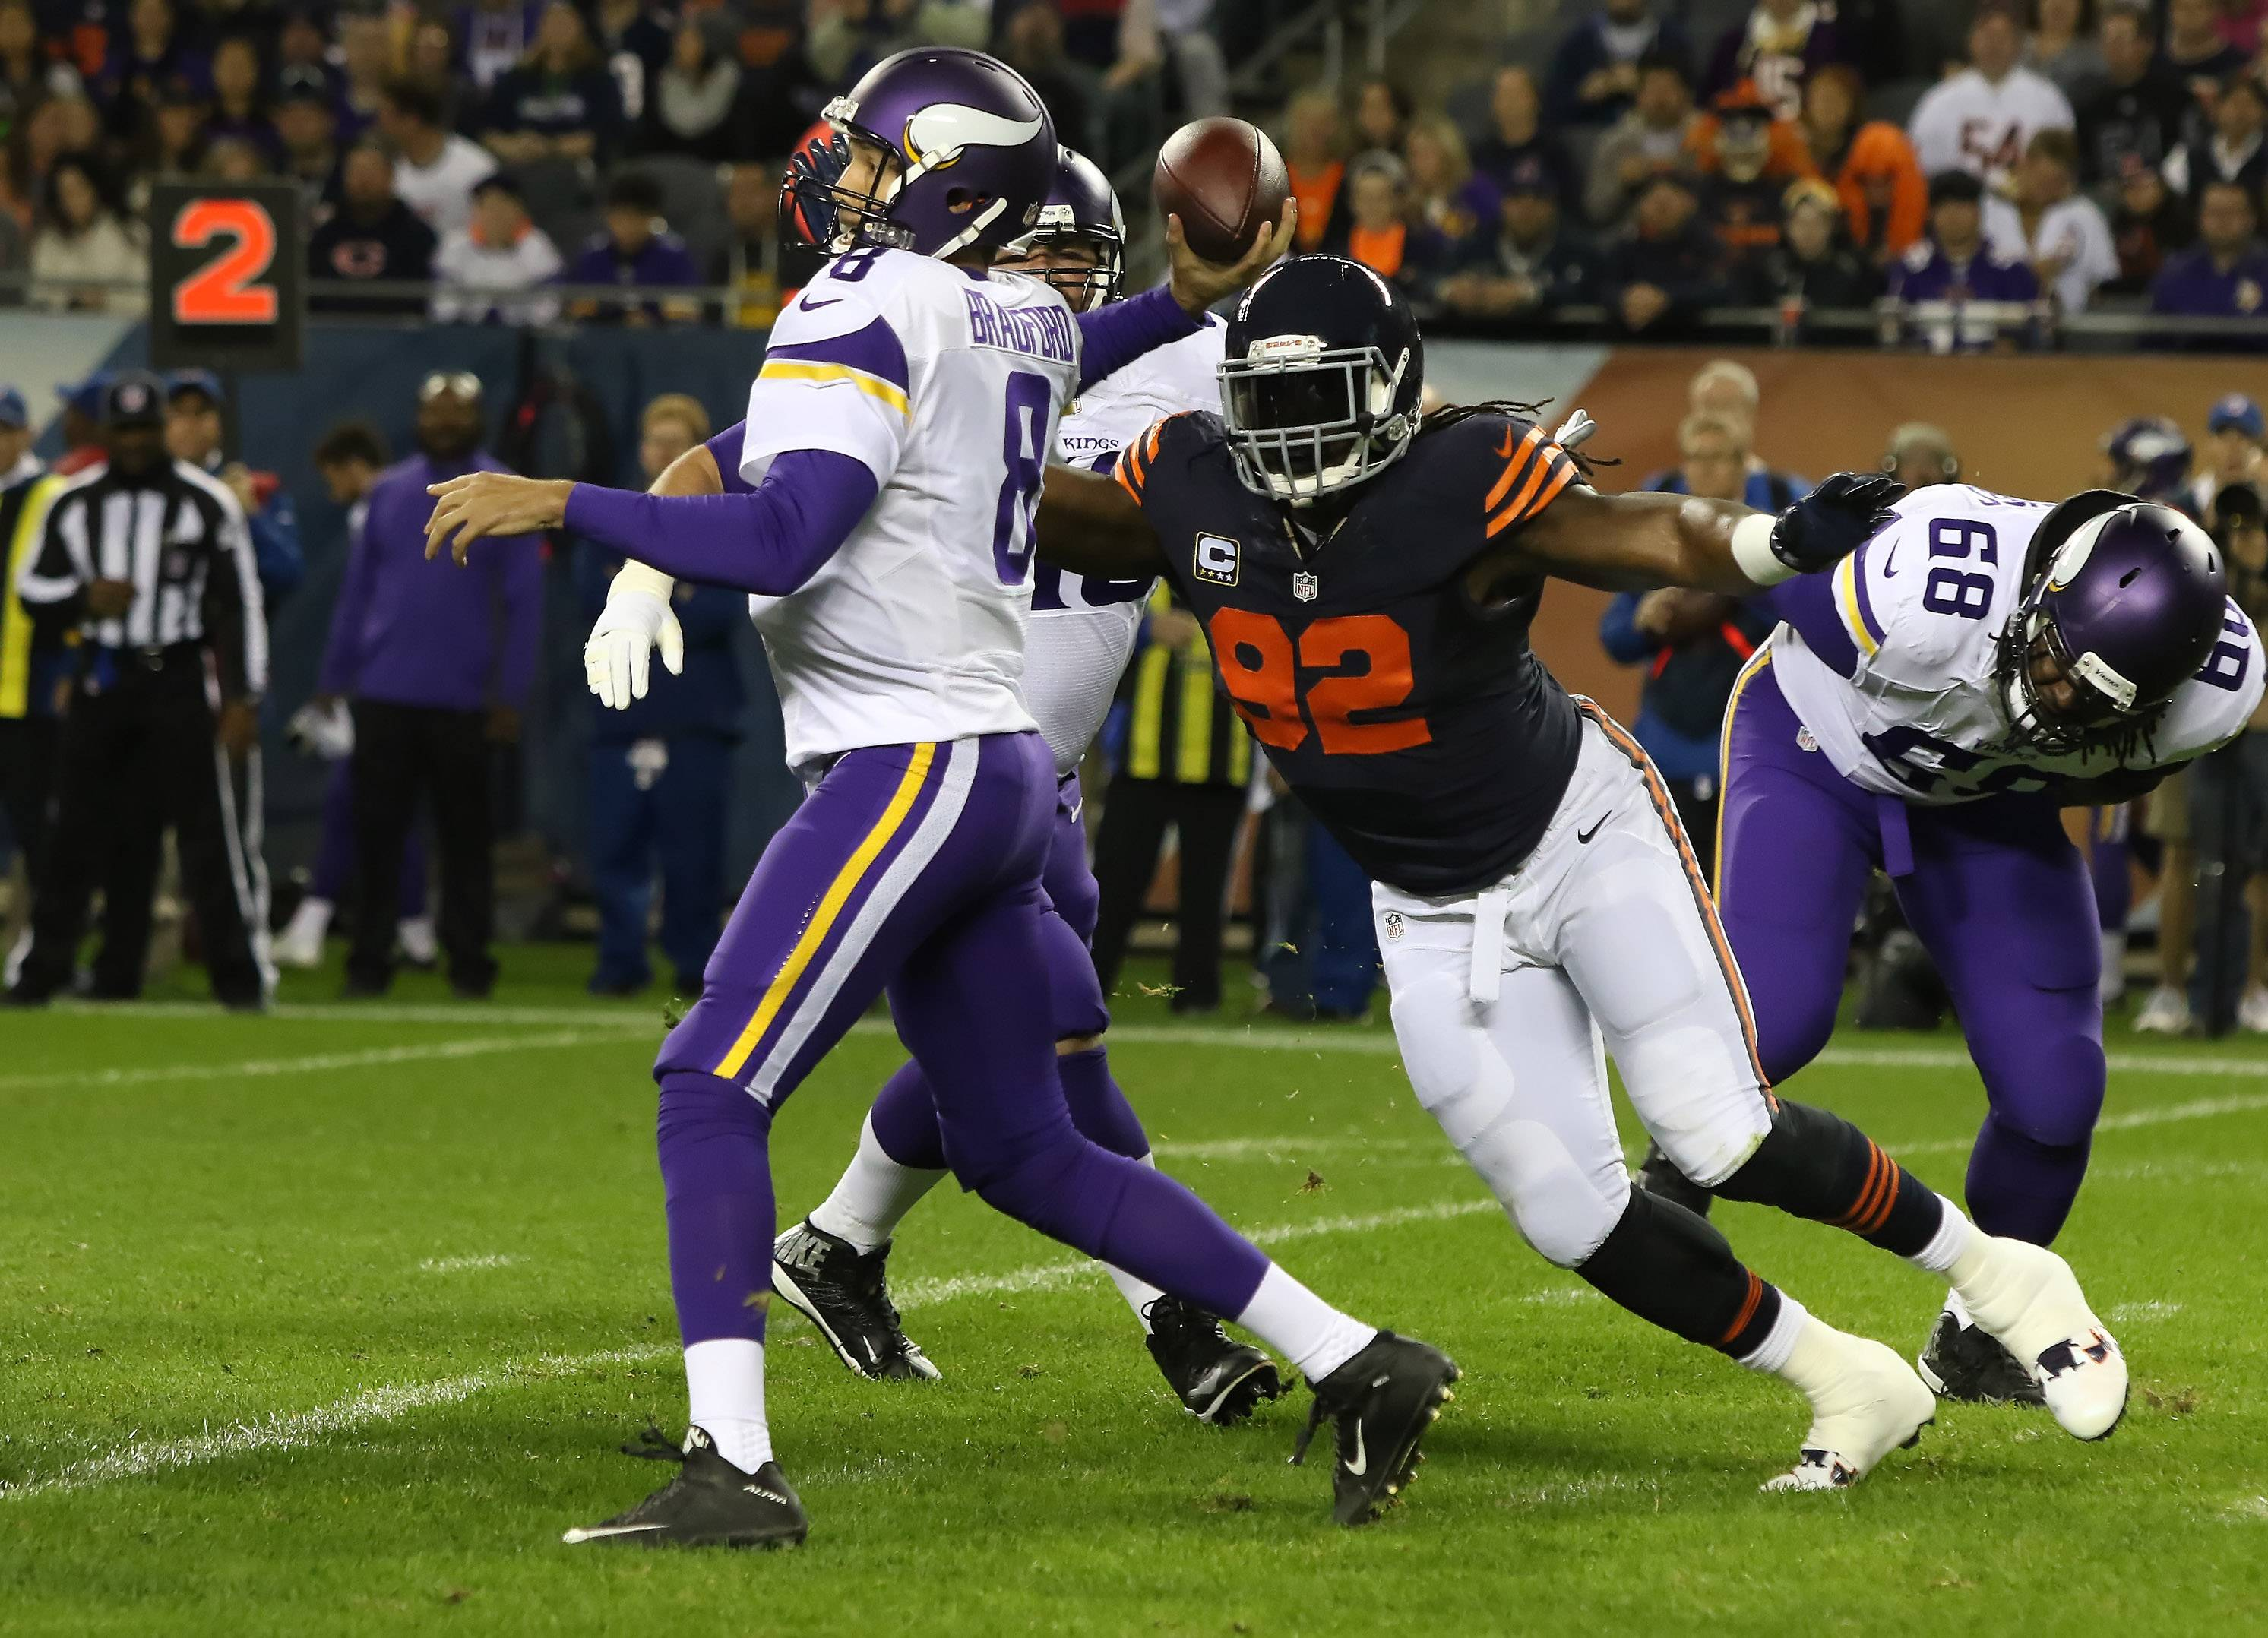 Minnesota Vikings quarterback Sam Bradford (8) is pressured by Chicago Bears outside linebacker Pernell McPhee (92) as he throws the ball in the first half during the NFL football game between the Chicago Bears and the Minnesota Vikings at Soldier Field in Chicago on Monday night.